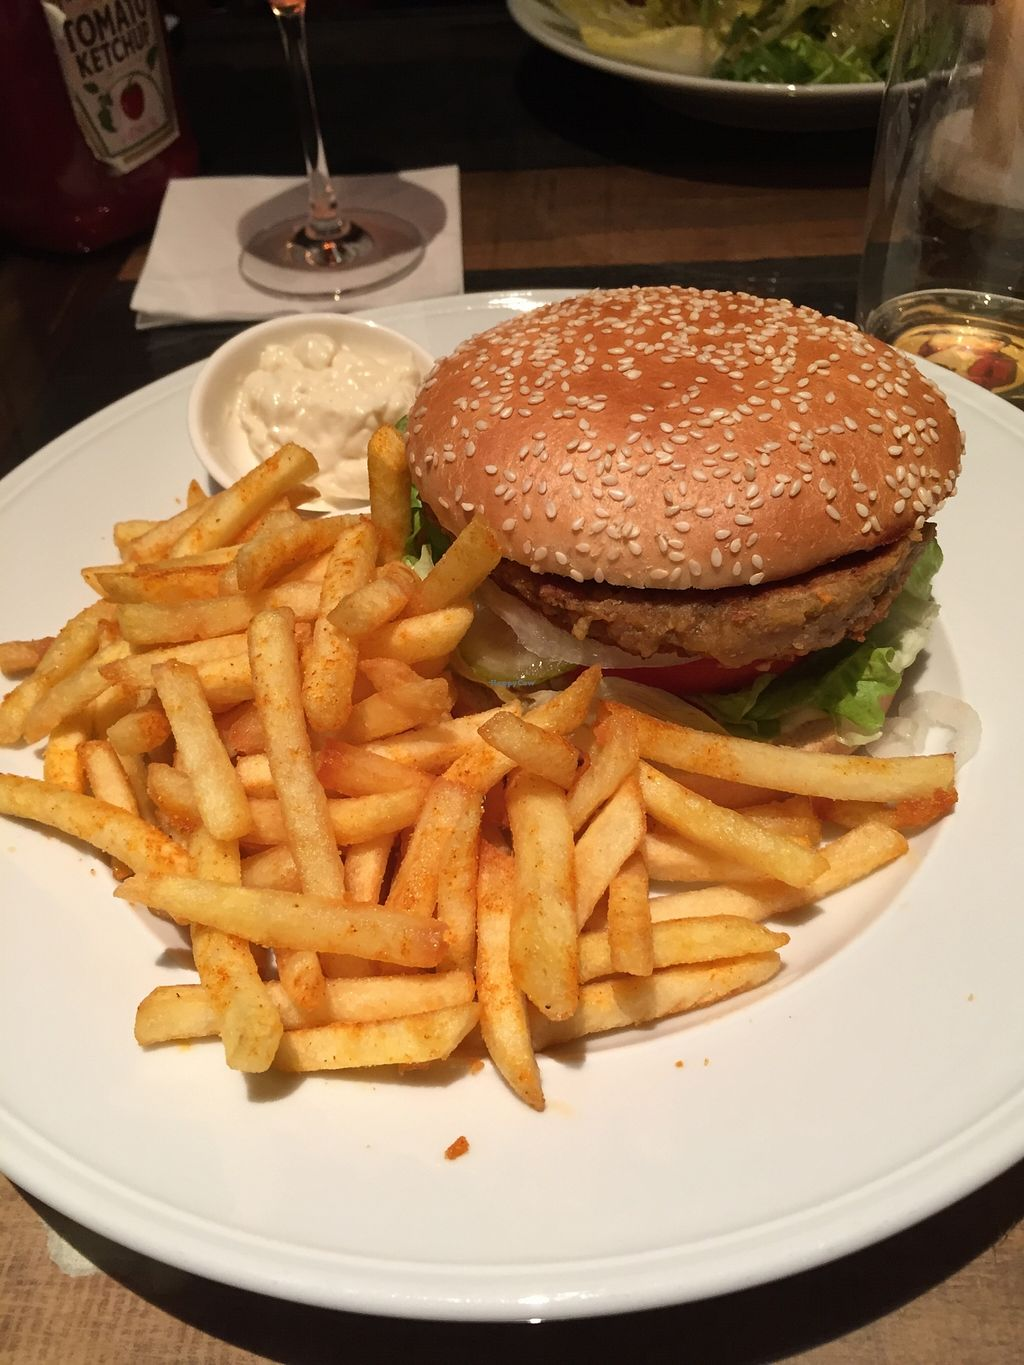 "Photo of Familienbetrieb  by <a href=""/members/profile/EmKlu"">EmKlu</a> <br/>Classic Burger with veggie/lentil patty and vegan mayo. So good!! <br/> March 22, 2016  - <a href='/contact/abuse/image/60304/140897'>Report</a>"